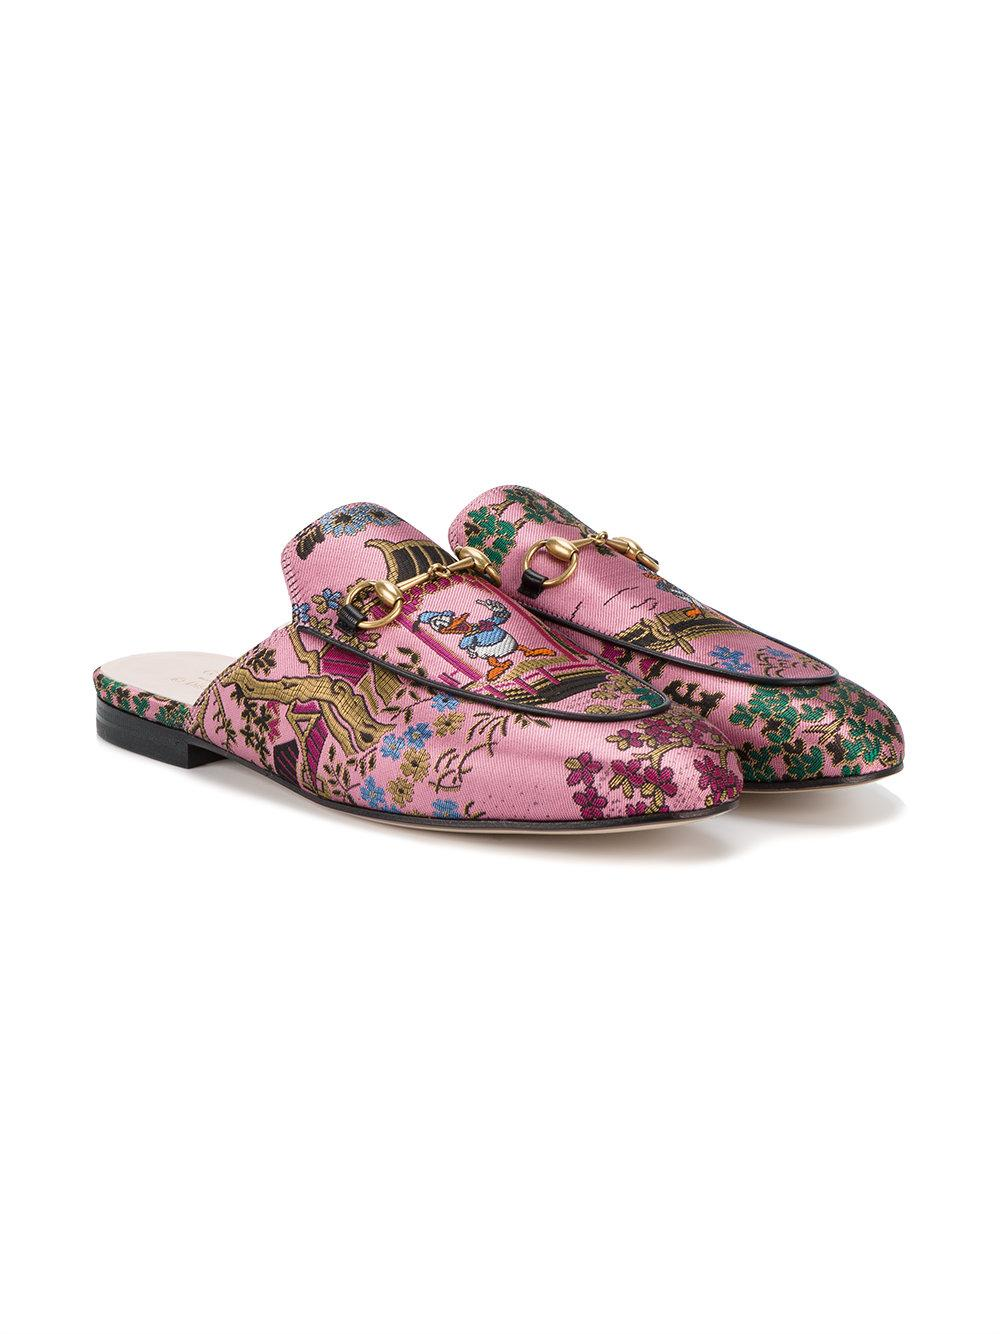 Gucci Canvas Princetown Donald Duck Jacquard Slippers In